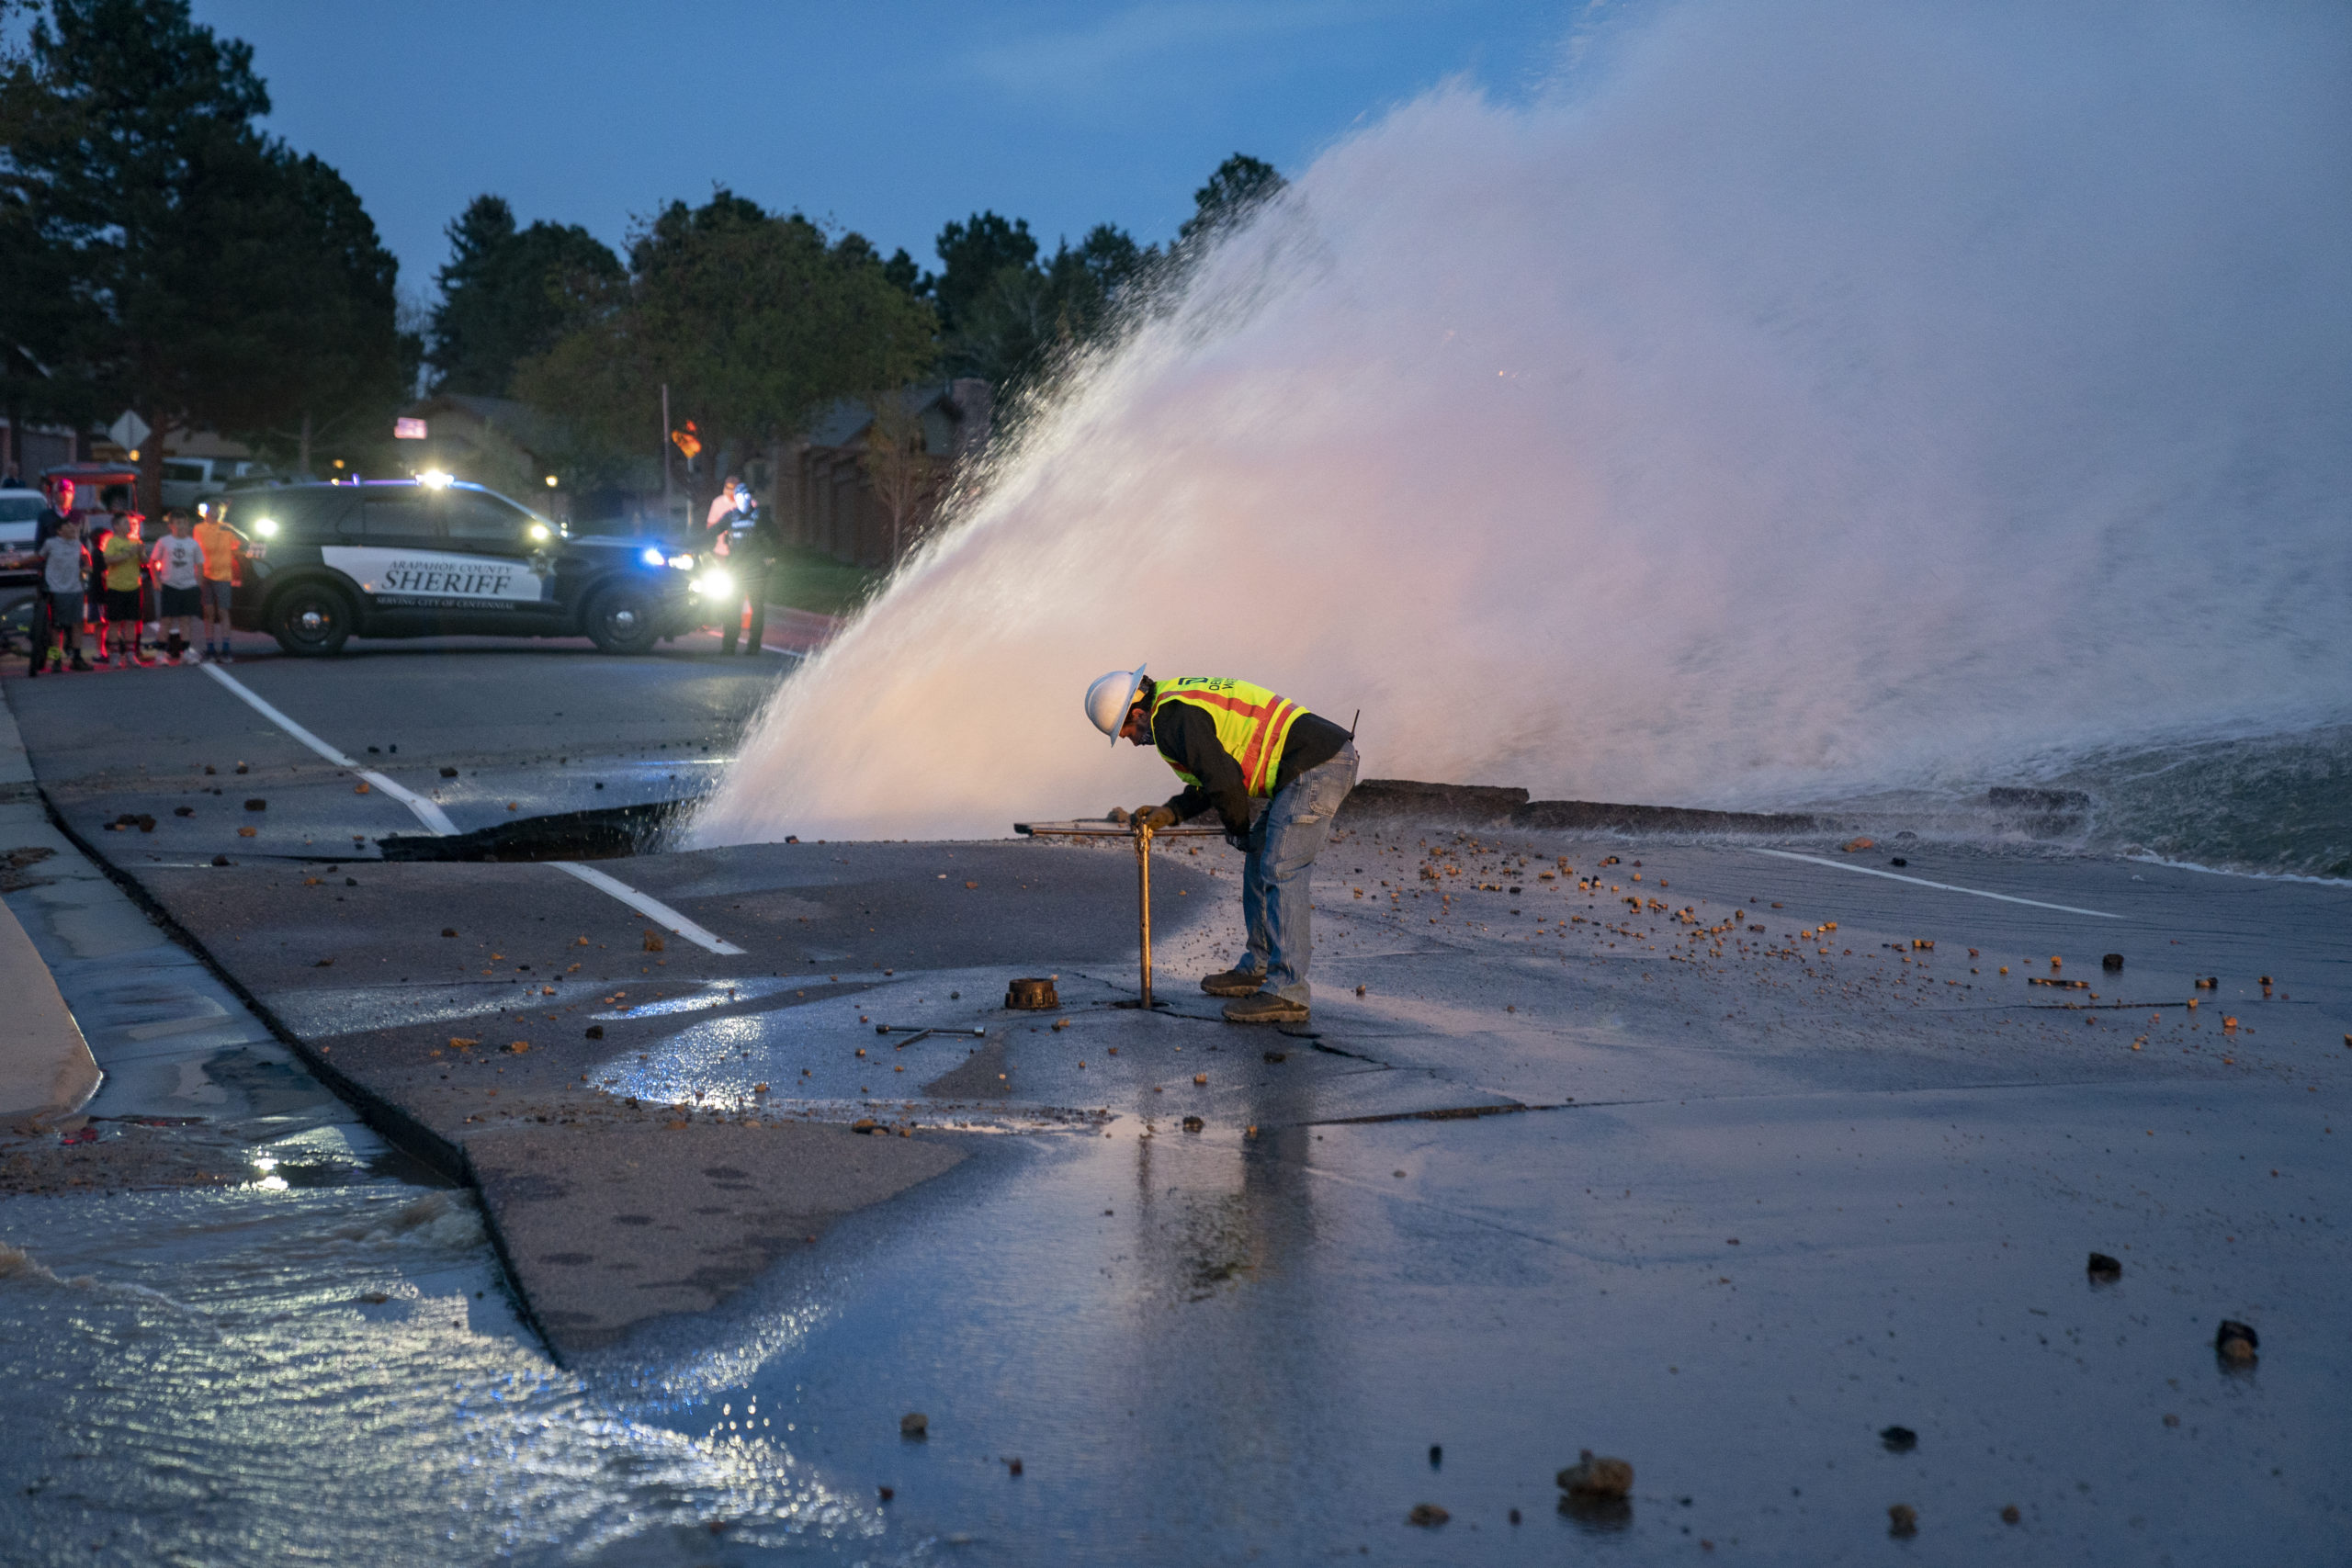 A man in a Denver Water vest is dwarfed by a geyser of water shooting out of a rupture in the street.